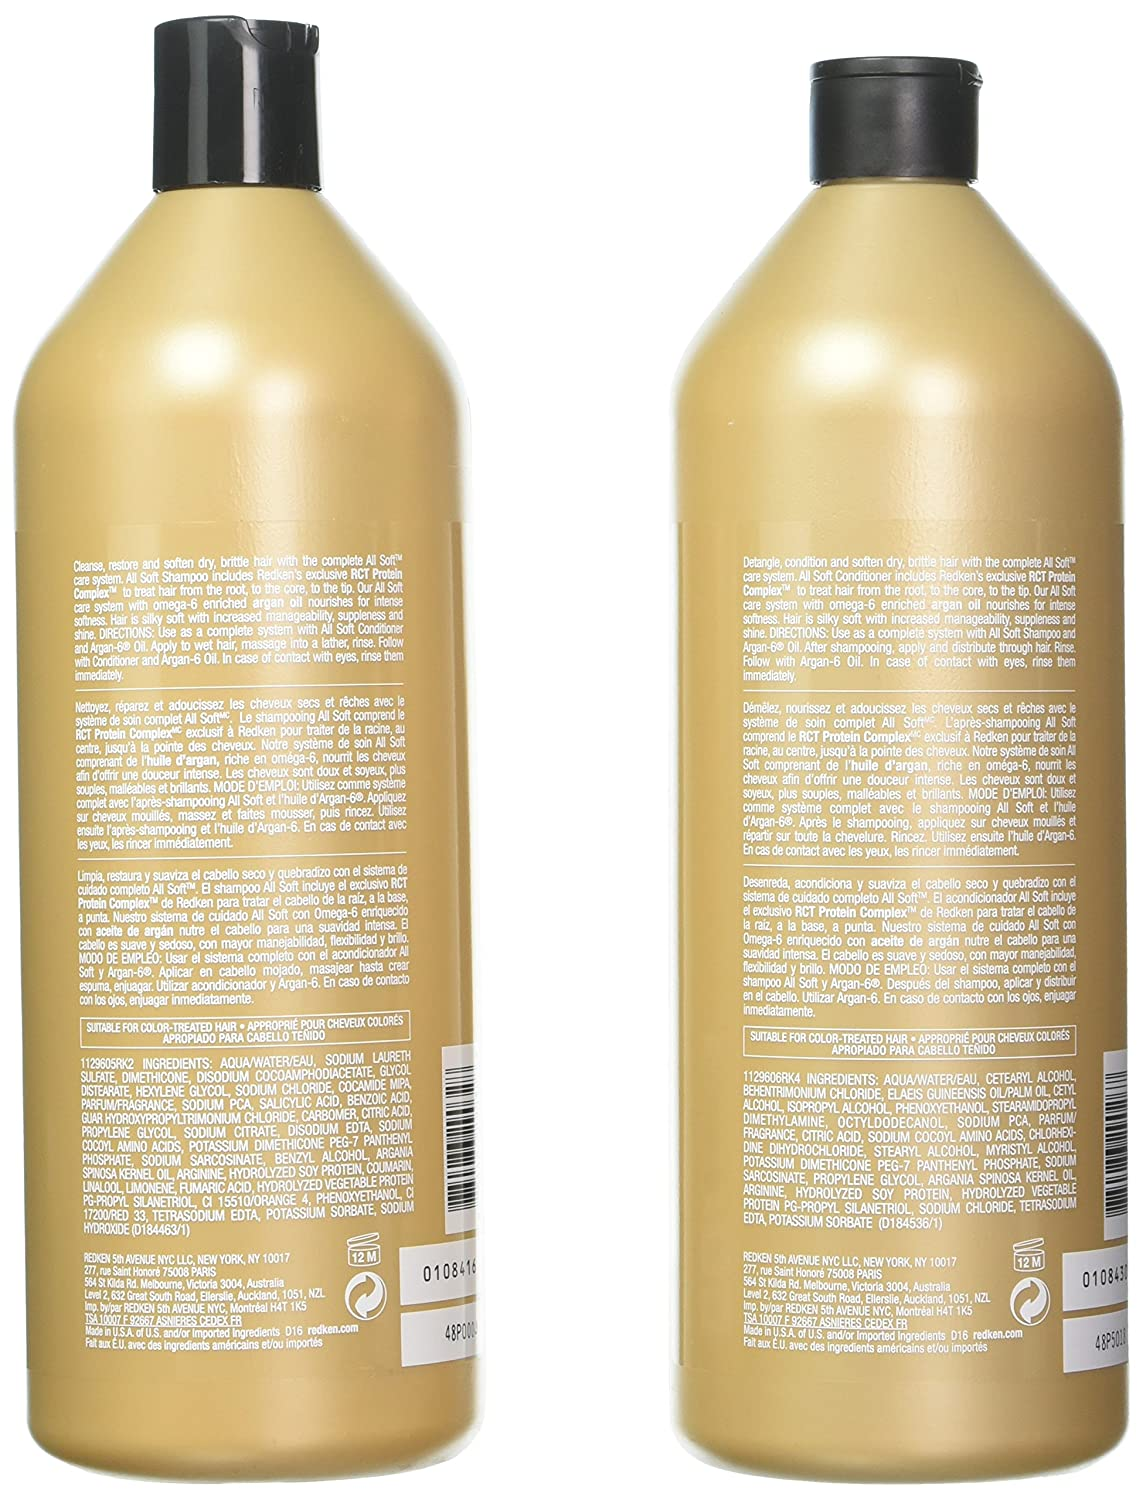 72f018dc207 Amazon.com  Redken All Soft Shampoo and Conditioner Set 33.8oz 1 Liter   Redken  Beauty